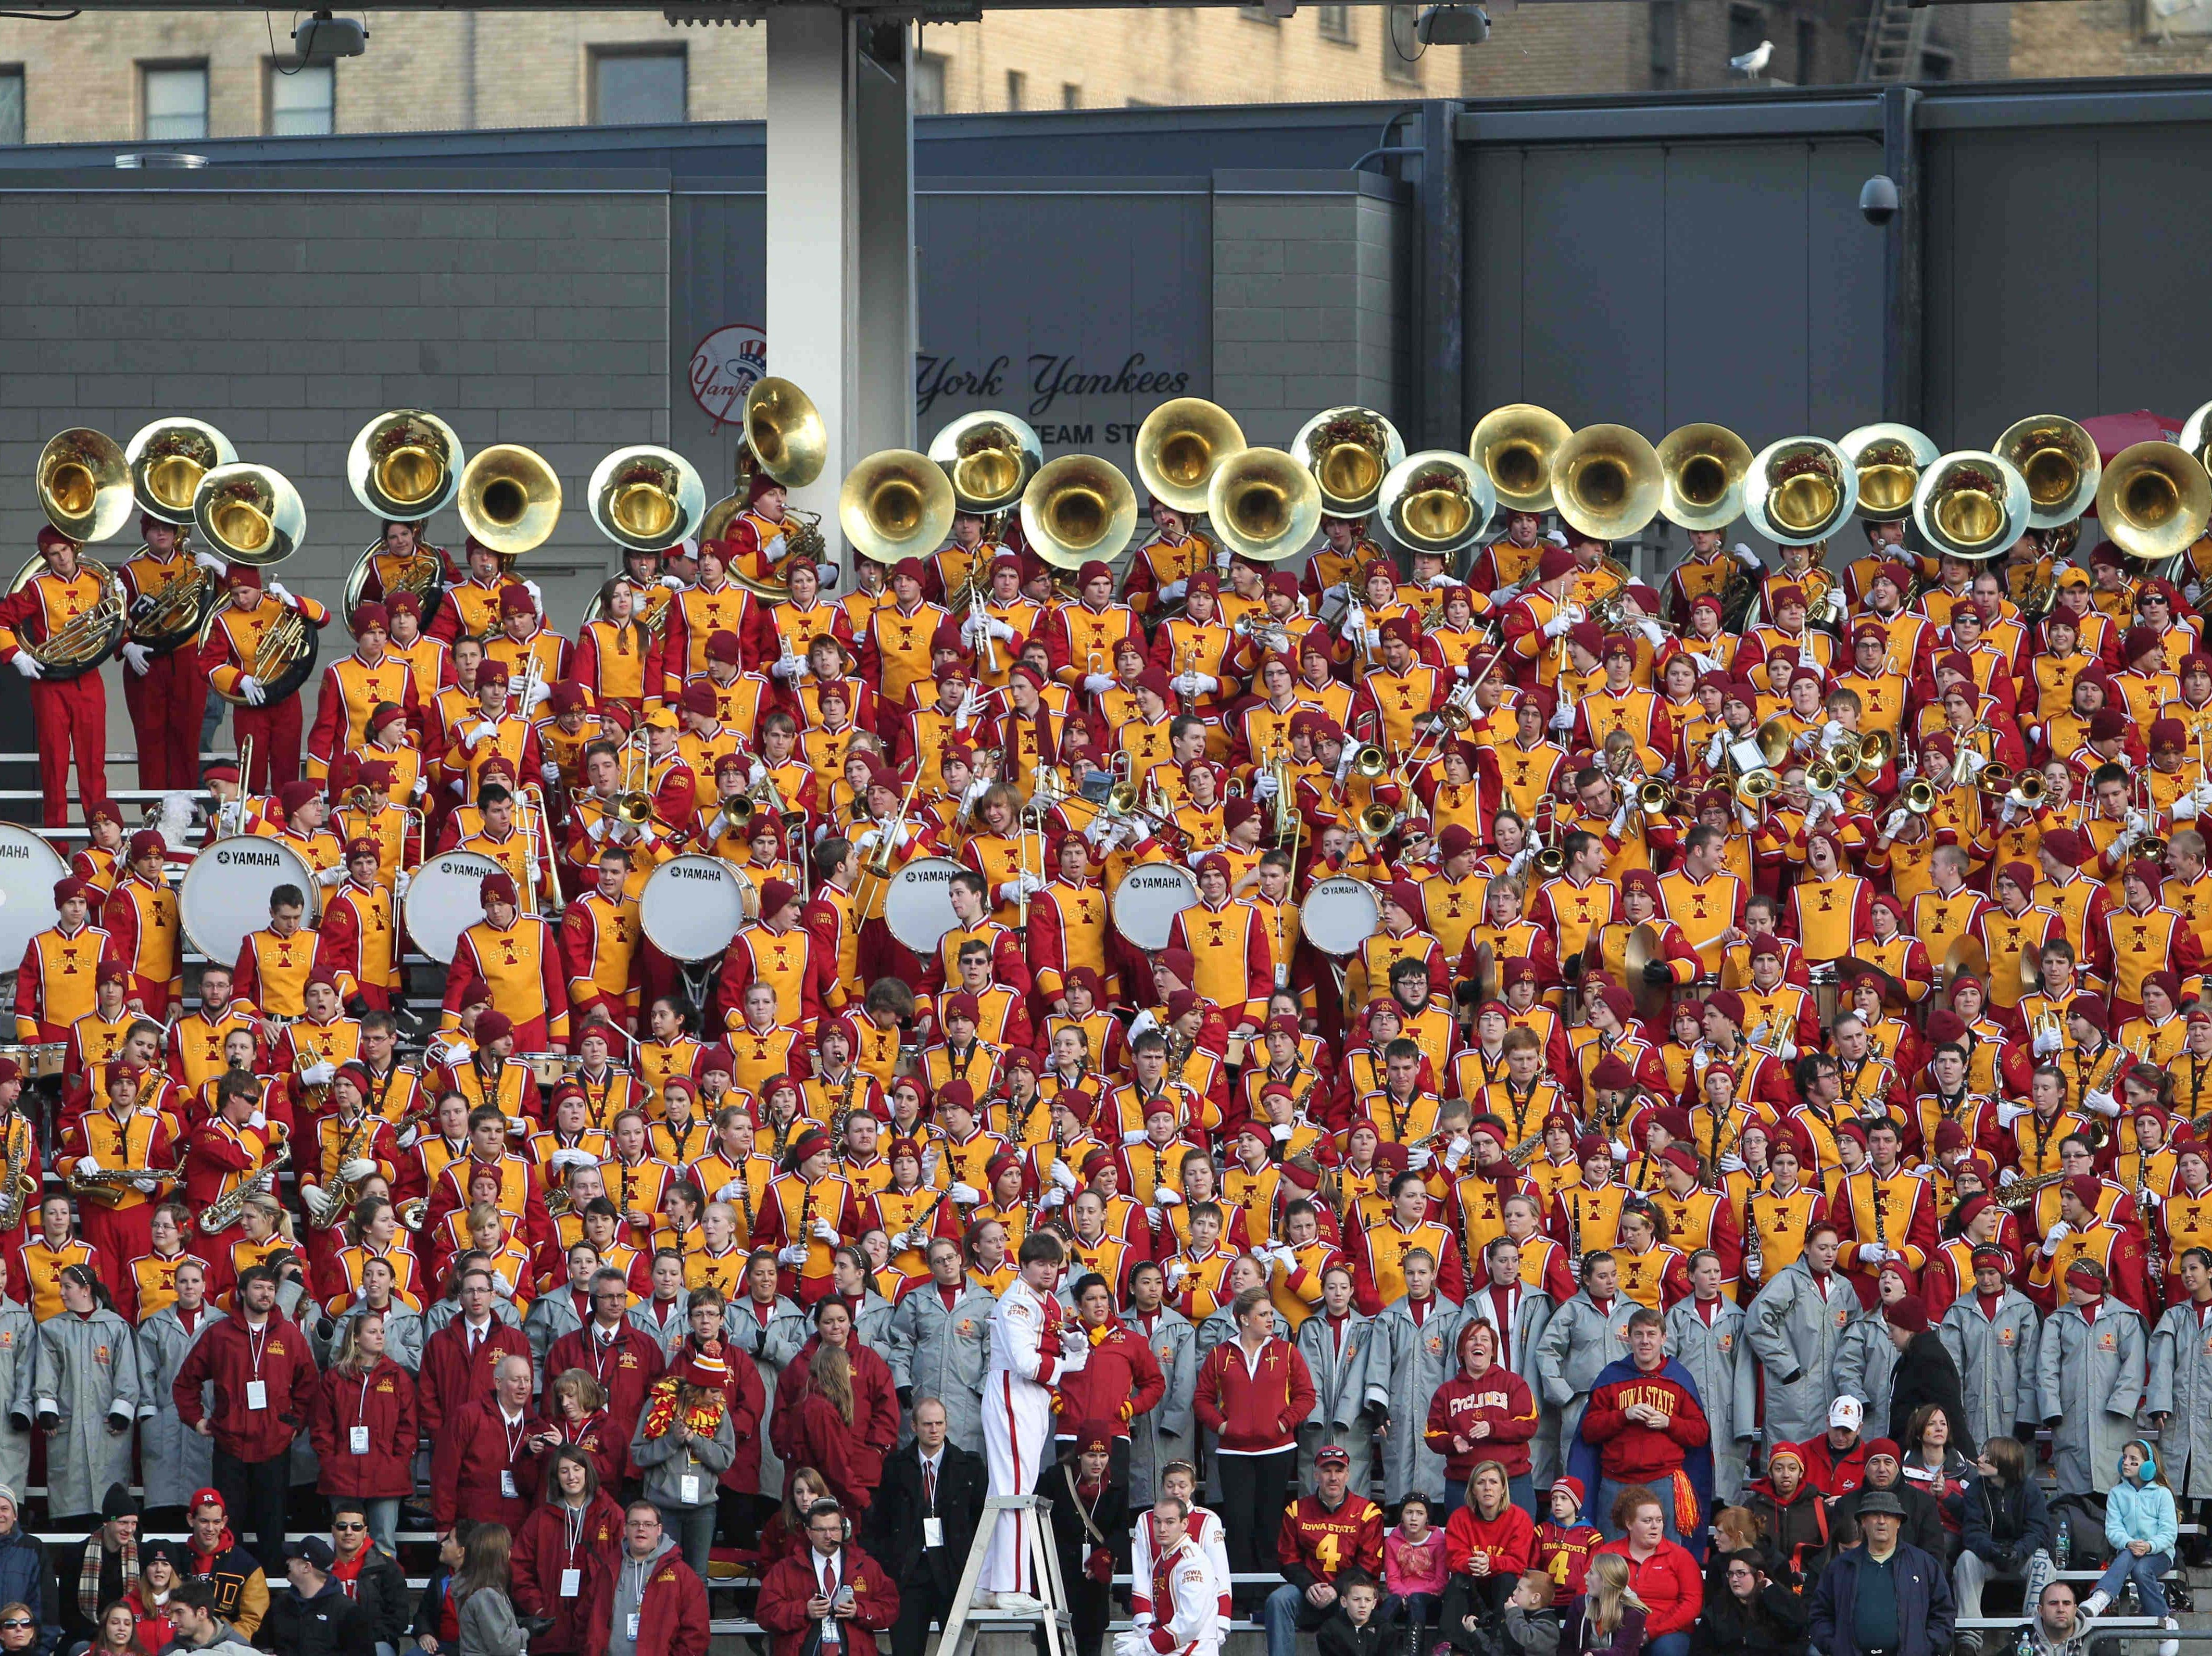 Iowa State Cyclones marching band entertains at the 2011 Pinstripe Bowl against the Rutgers Scarlet Knights at Yankee Stadium.